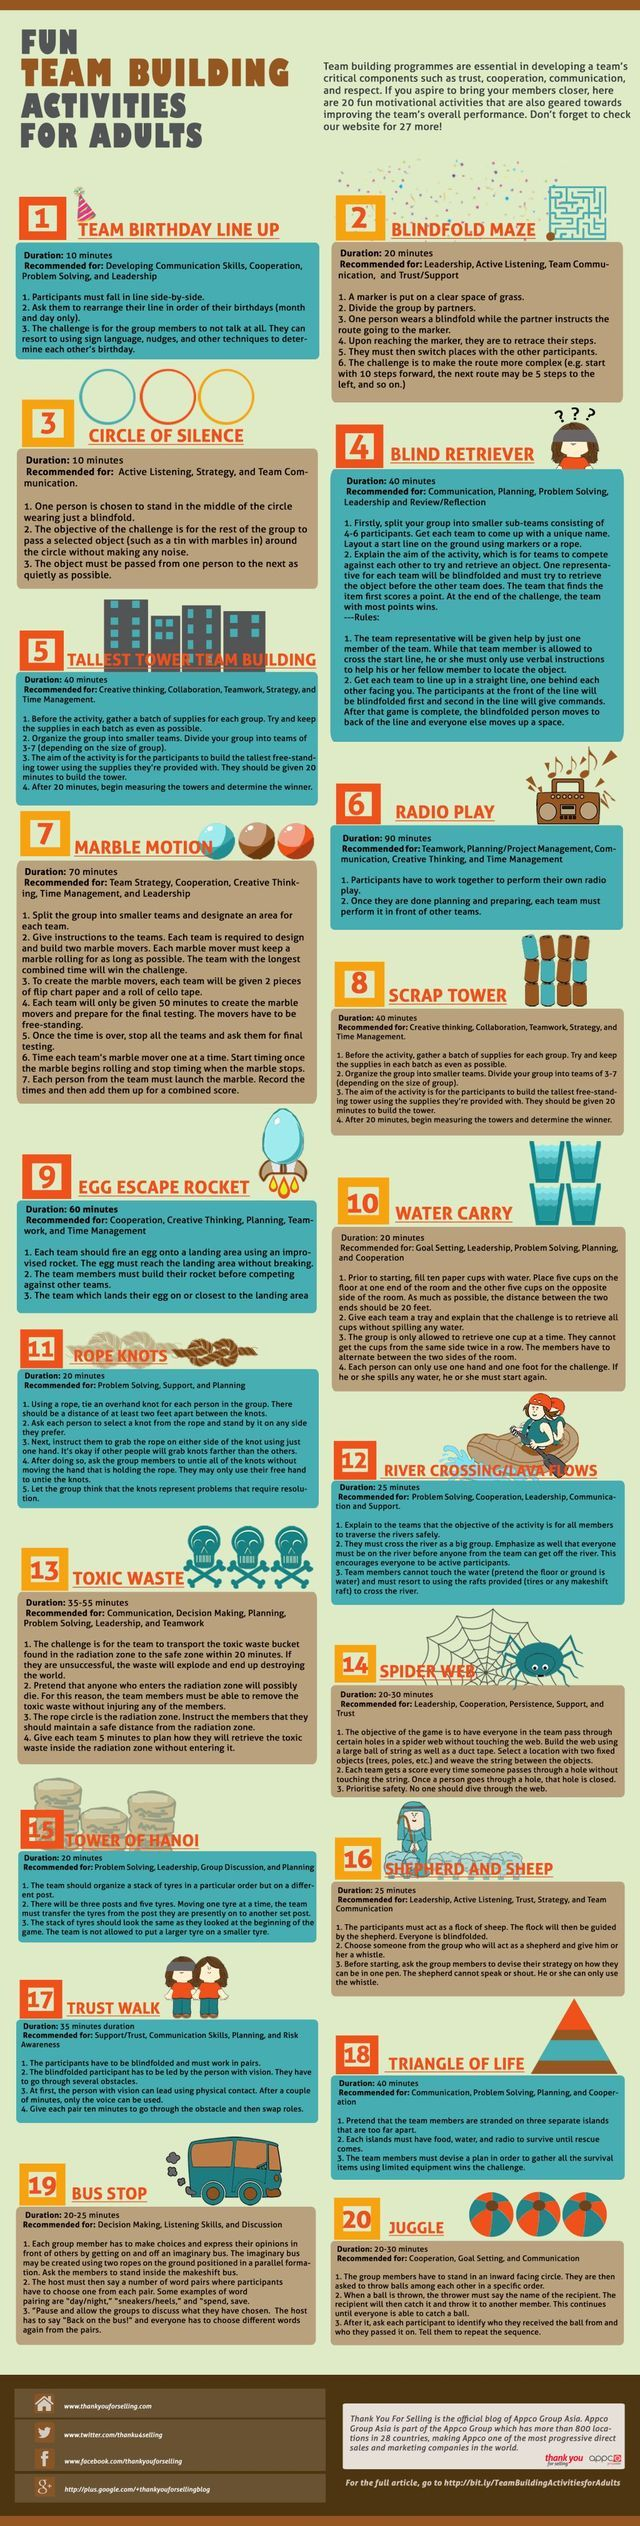 Fun team building activities for adults. These are perfect for organizational team-building!